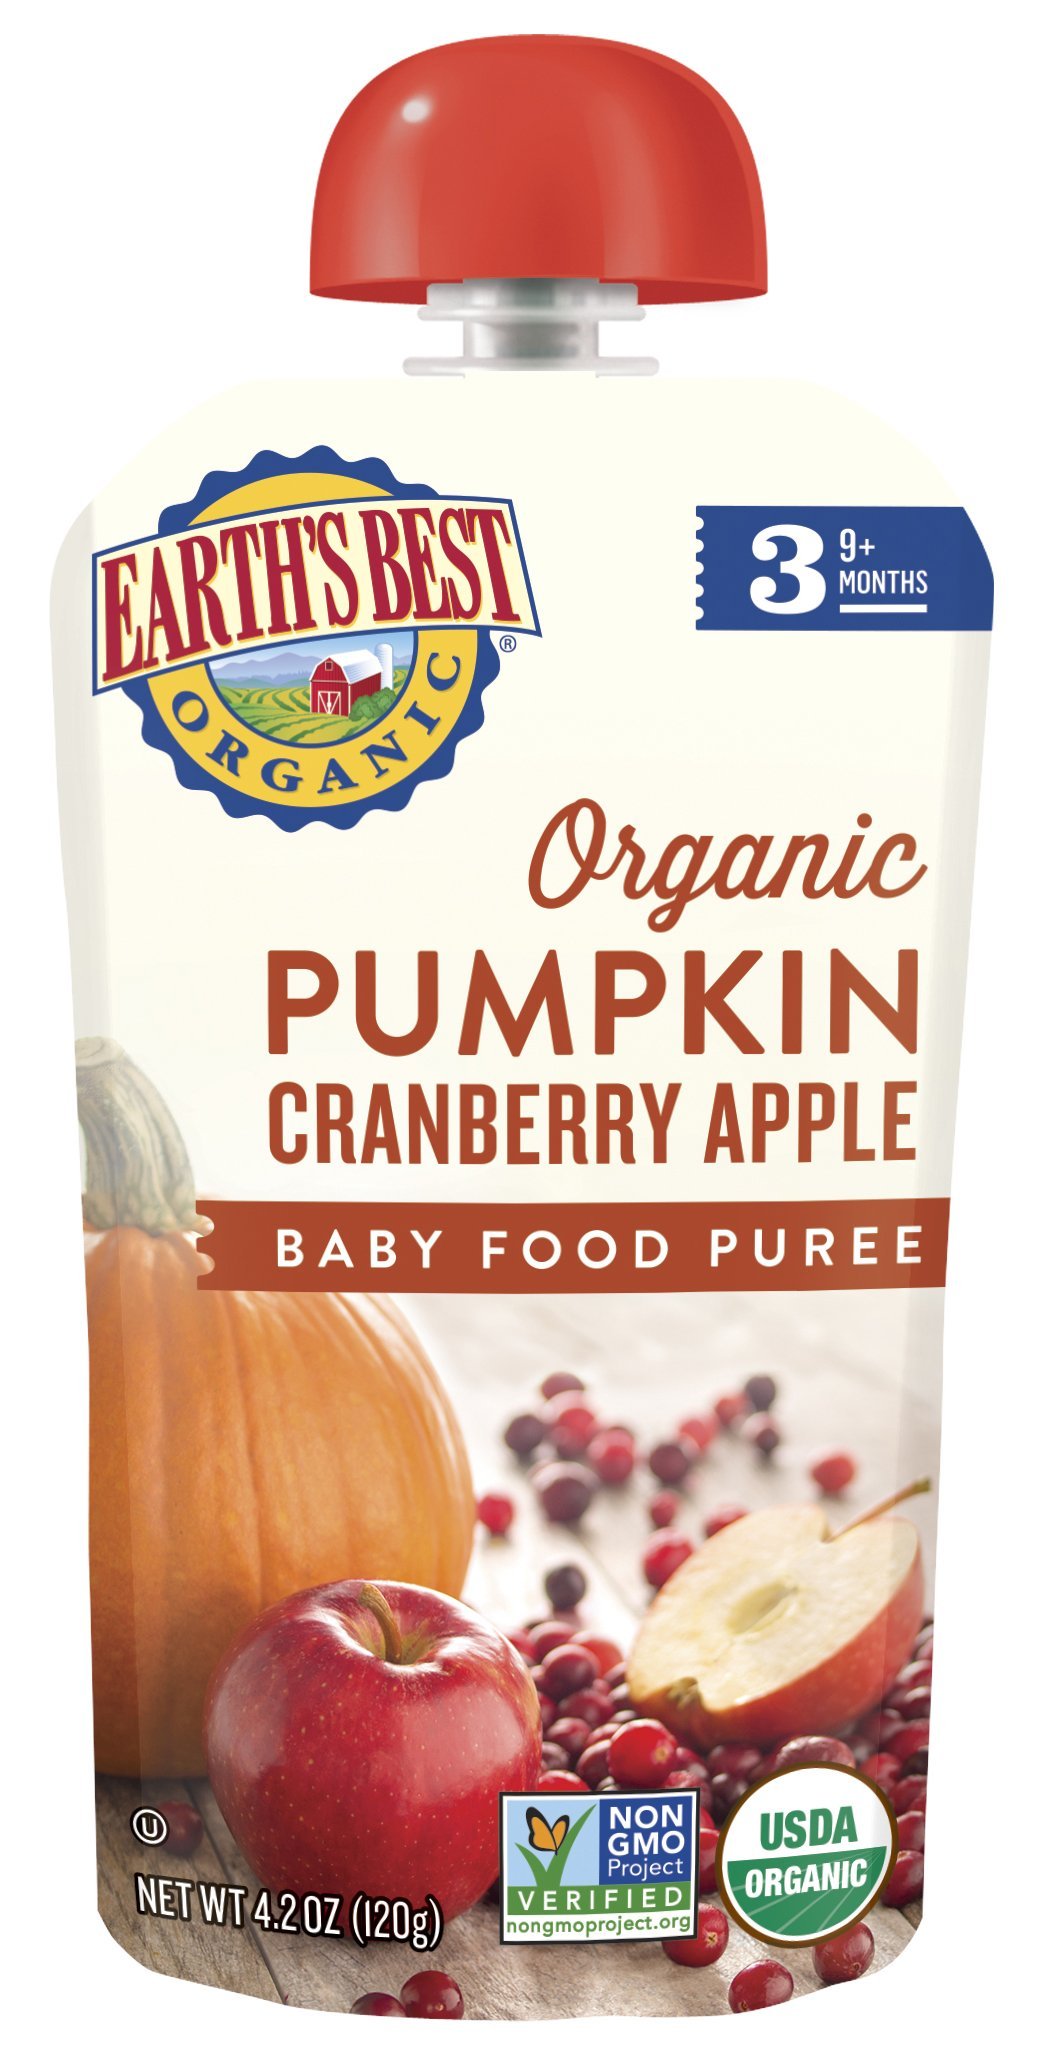 Earth's Best Organic Stage 3, Pumpkin, Cranberry & Apple, 4.2 Ounce Pouch (Pack of 12) (Packaging May Vary) by Earth's Best (Image #1)